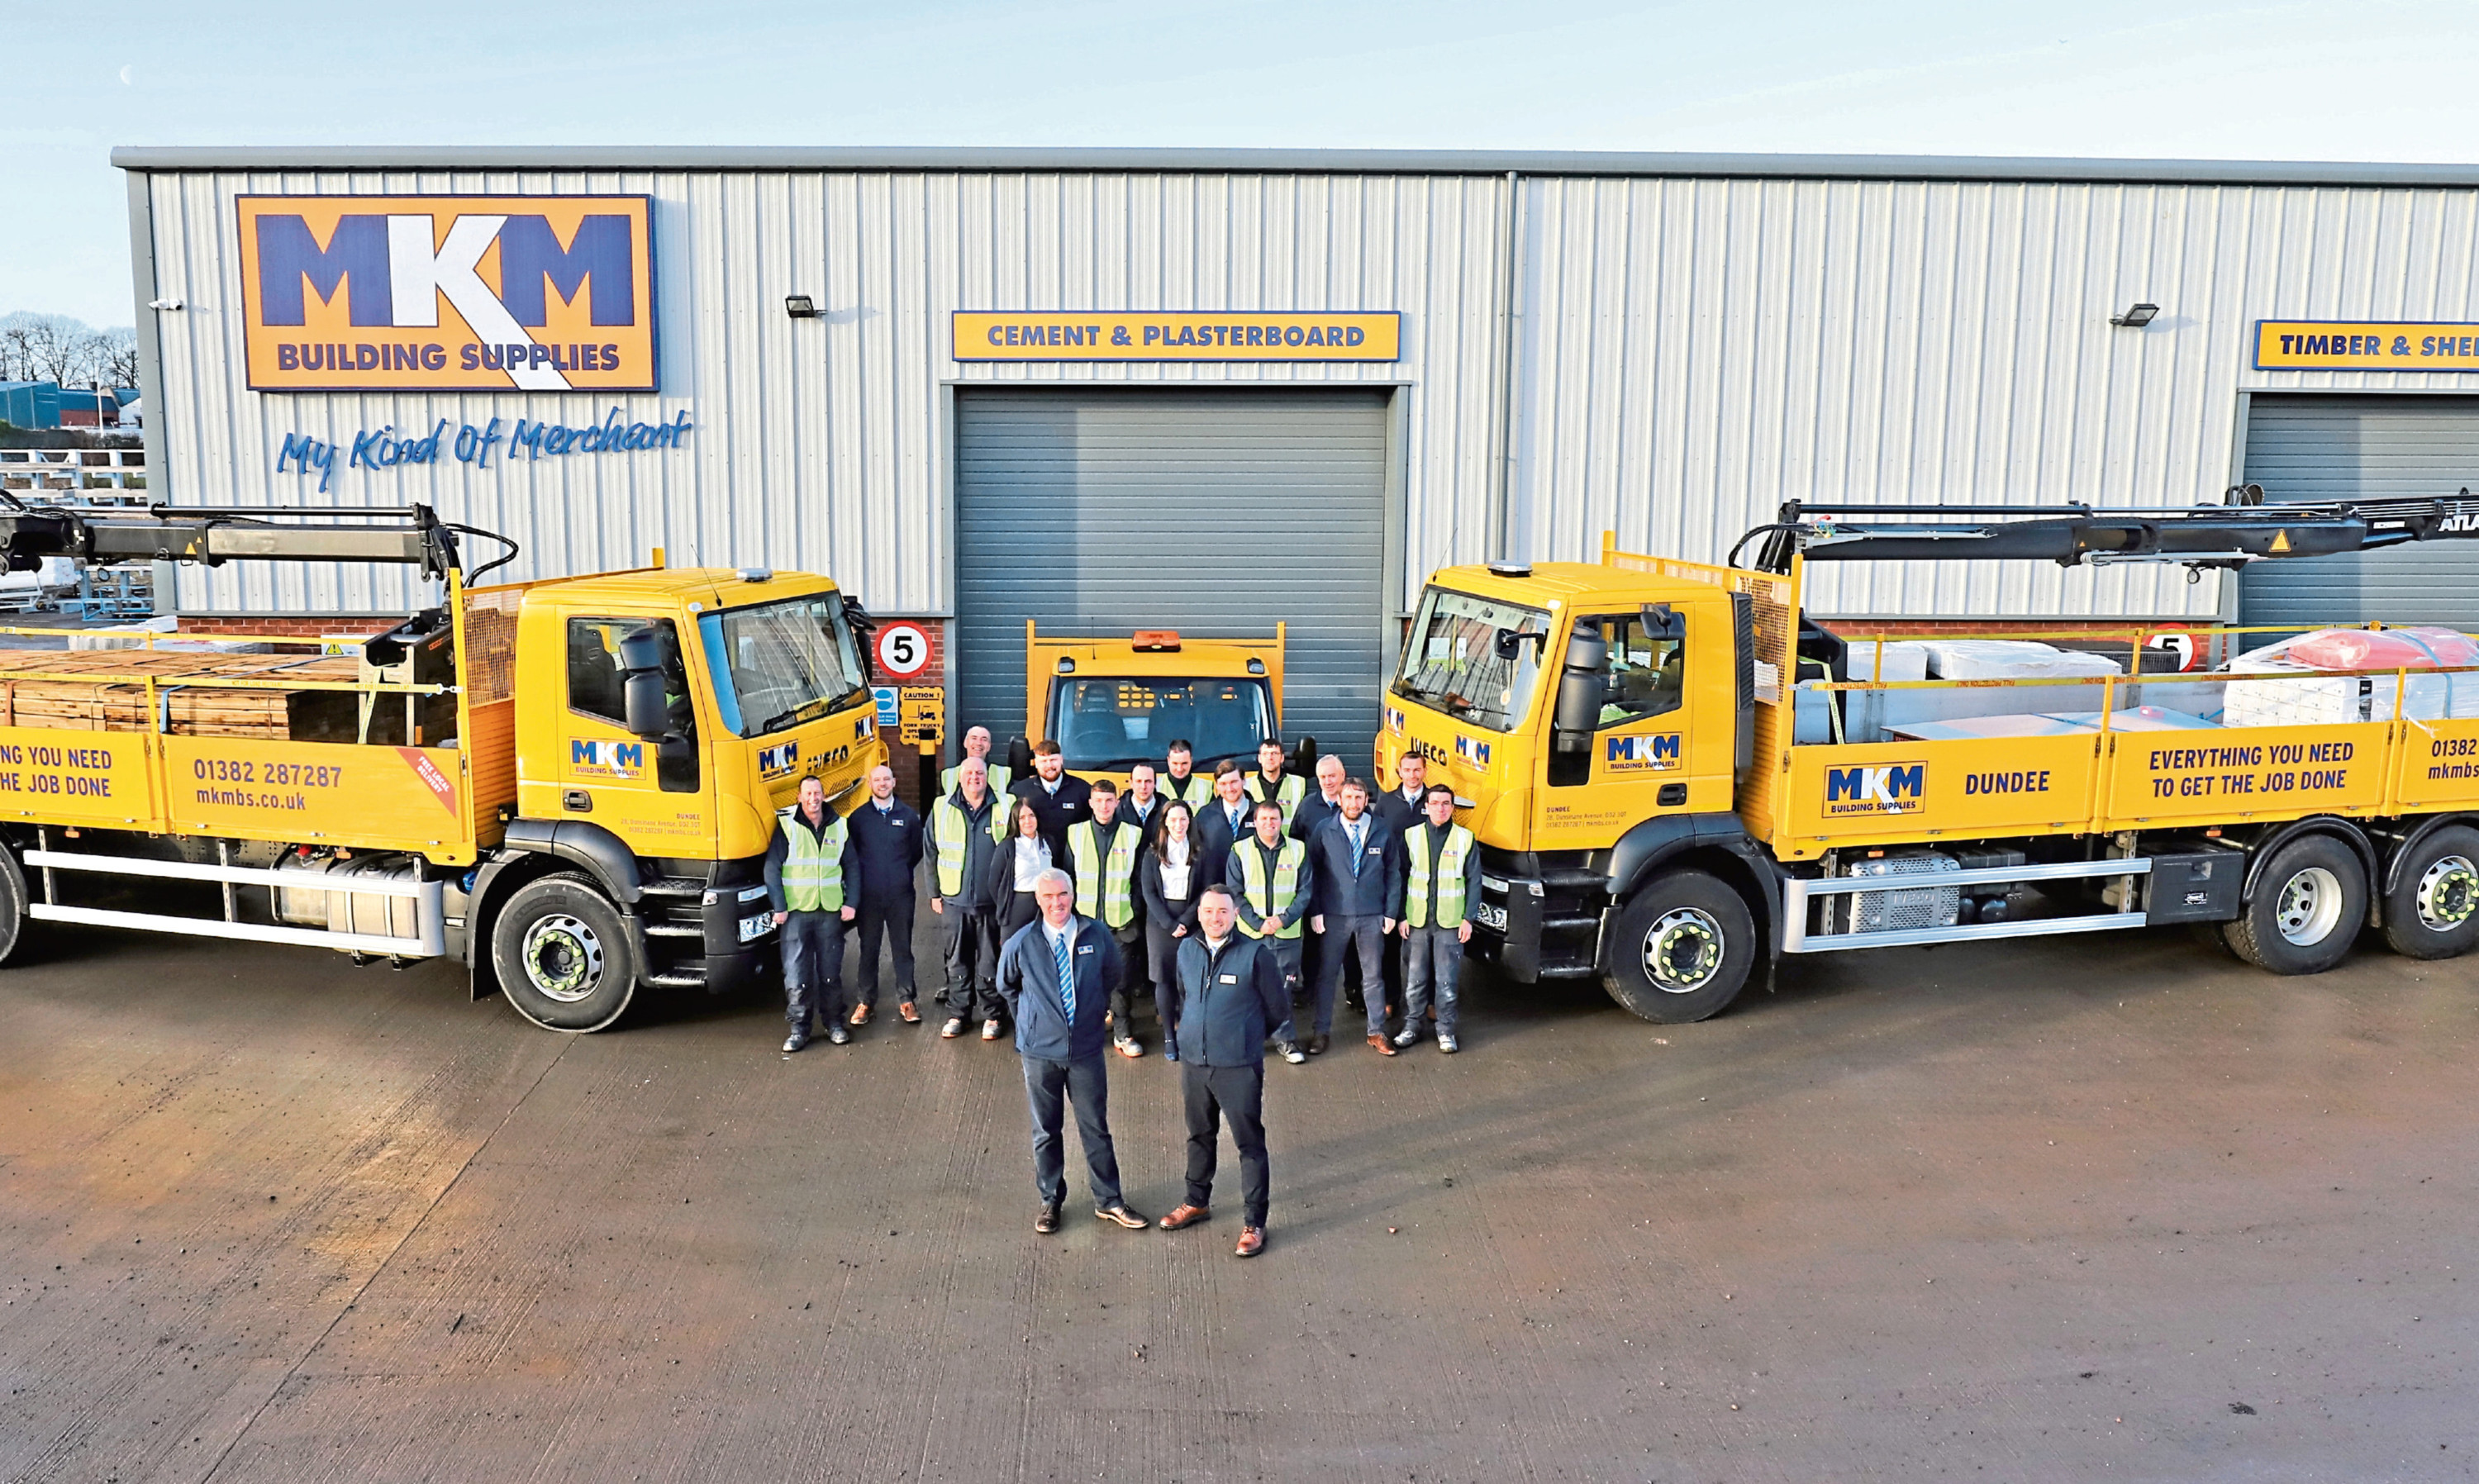 MKM Building Supplies Dundee branch directors Barclay Scott and Ross MacGregor with staff.